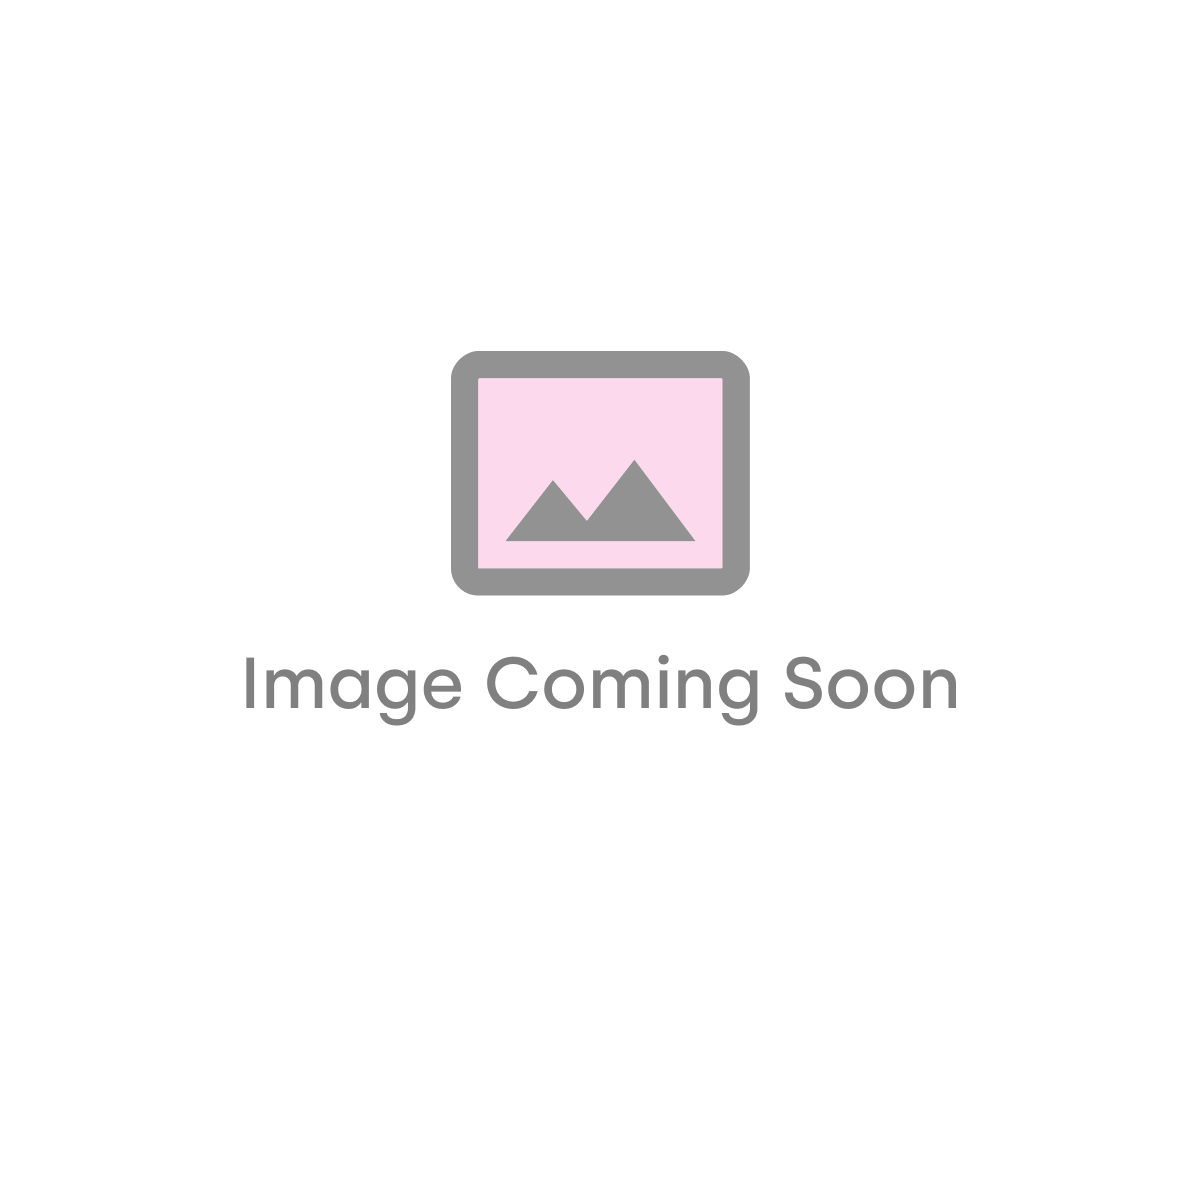 Minuto 400mm Floorstanding Cloakroom Vanity Unit & Basin - Natural Oak (19257)